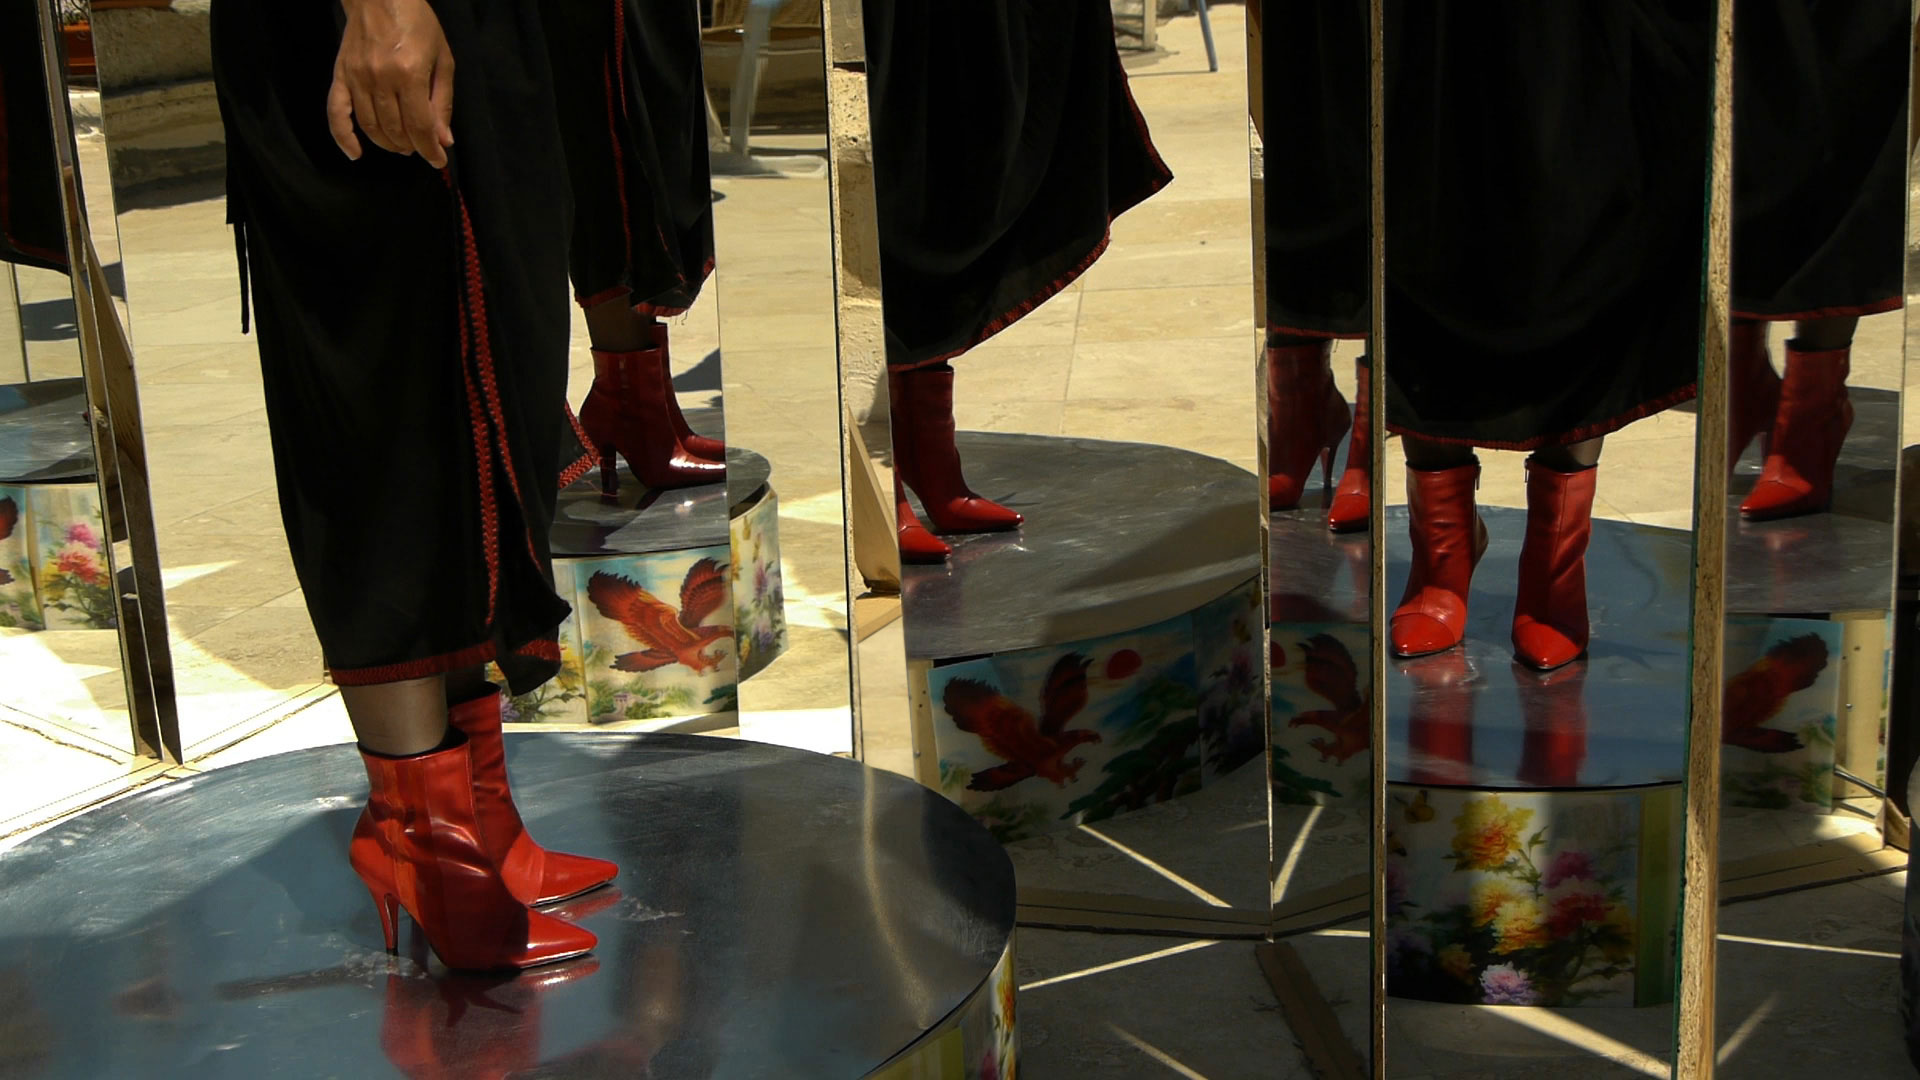 a person from the waist down standing with red stiletto ankle boots looking in a mirror